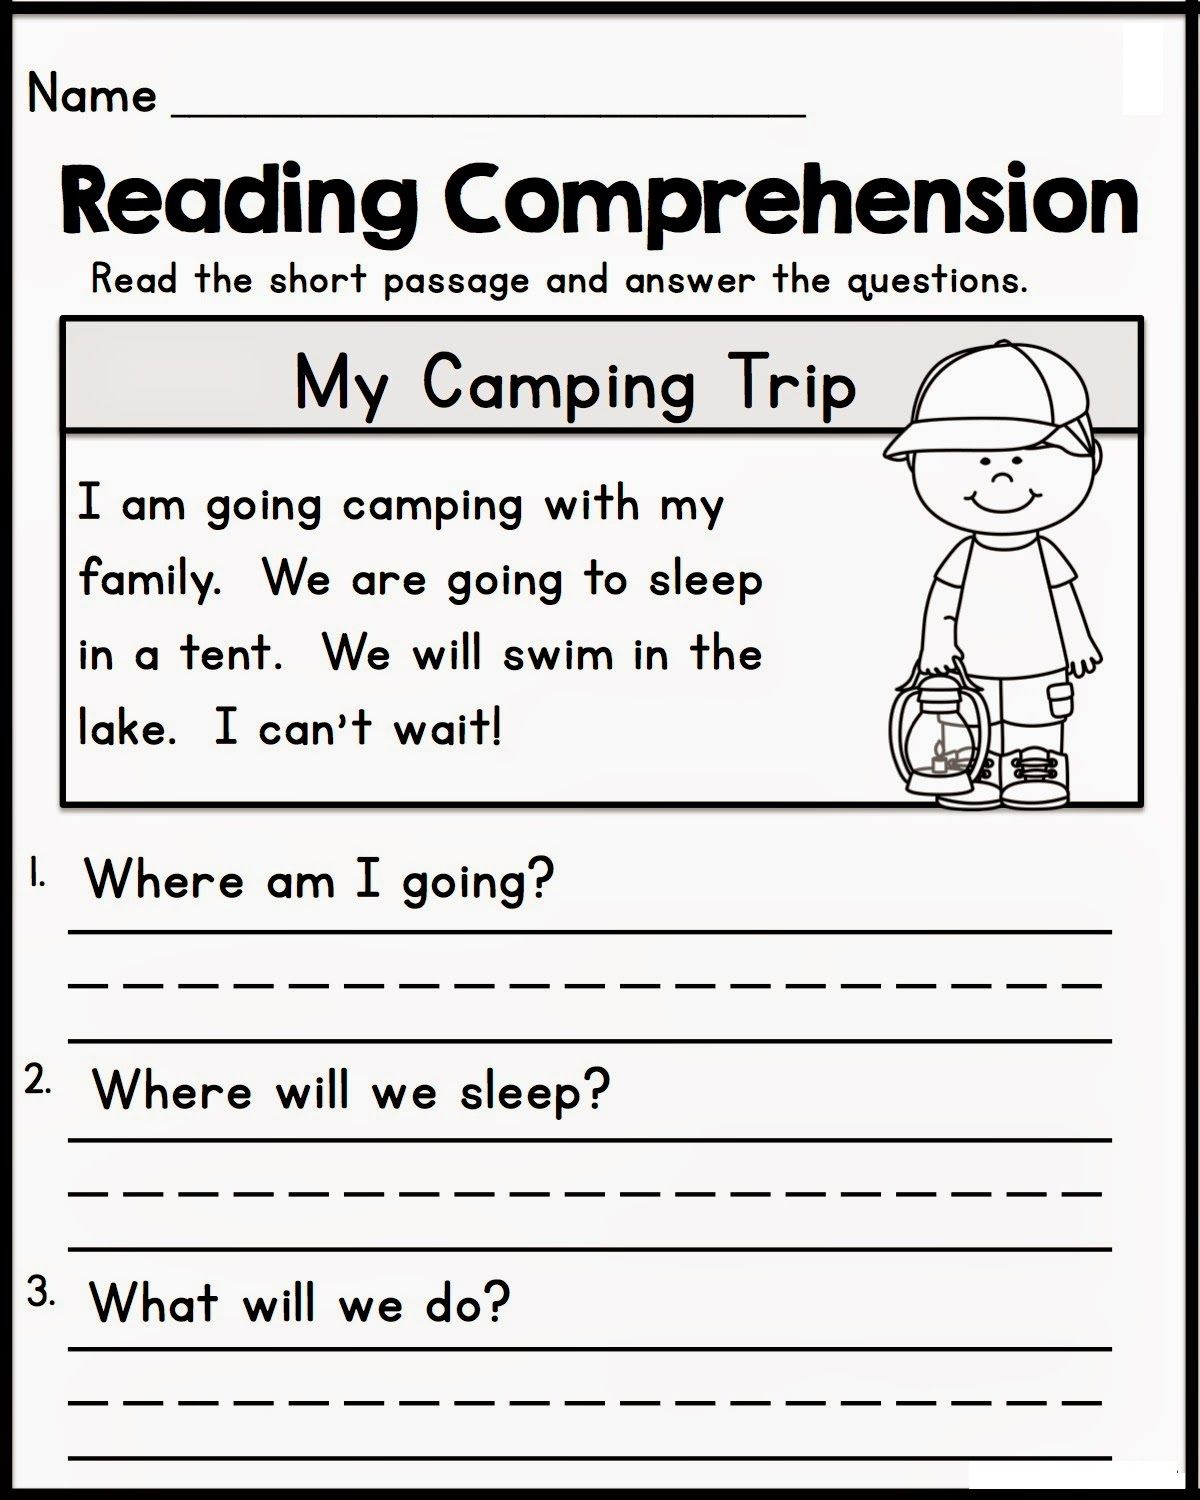 hight resolution of Printable Learning Reading Sheets for Kids   Educative Printable   1st grade  reading worksheets